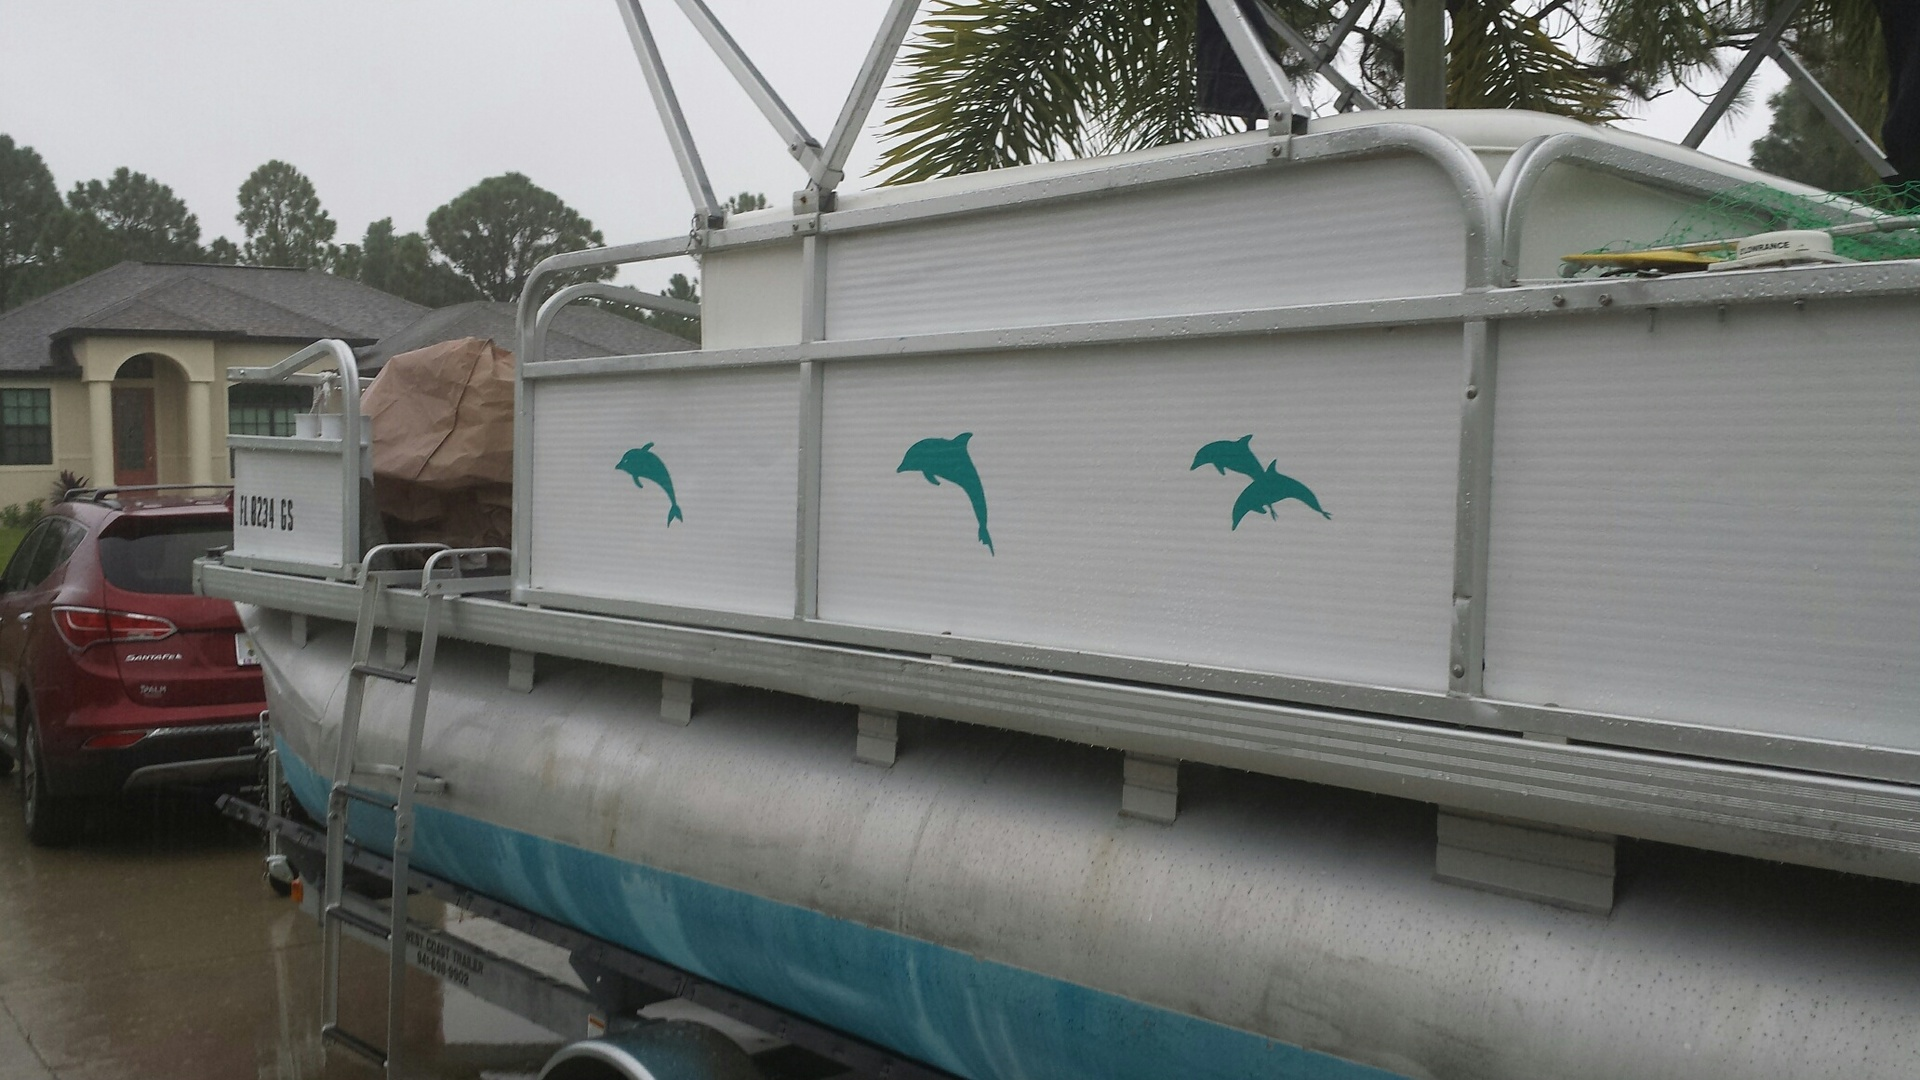 William's photograph of their Two Dolphins Jumping Sticker